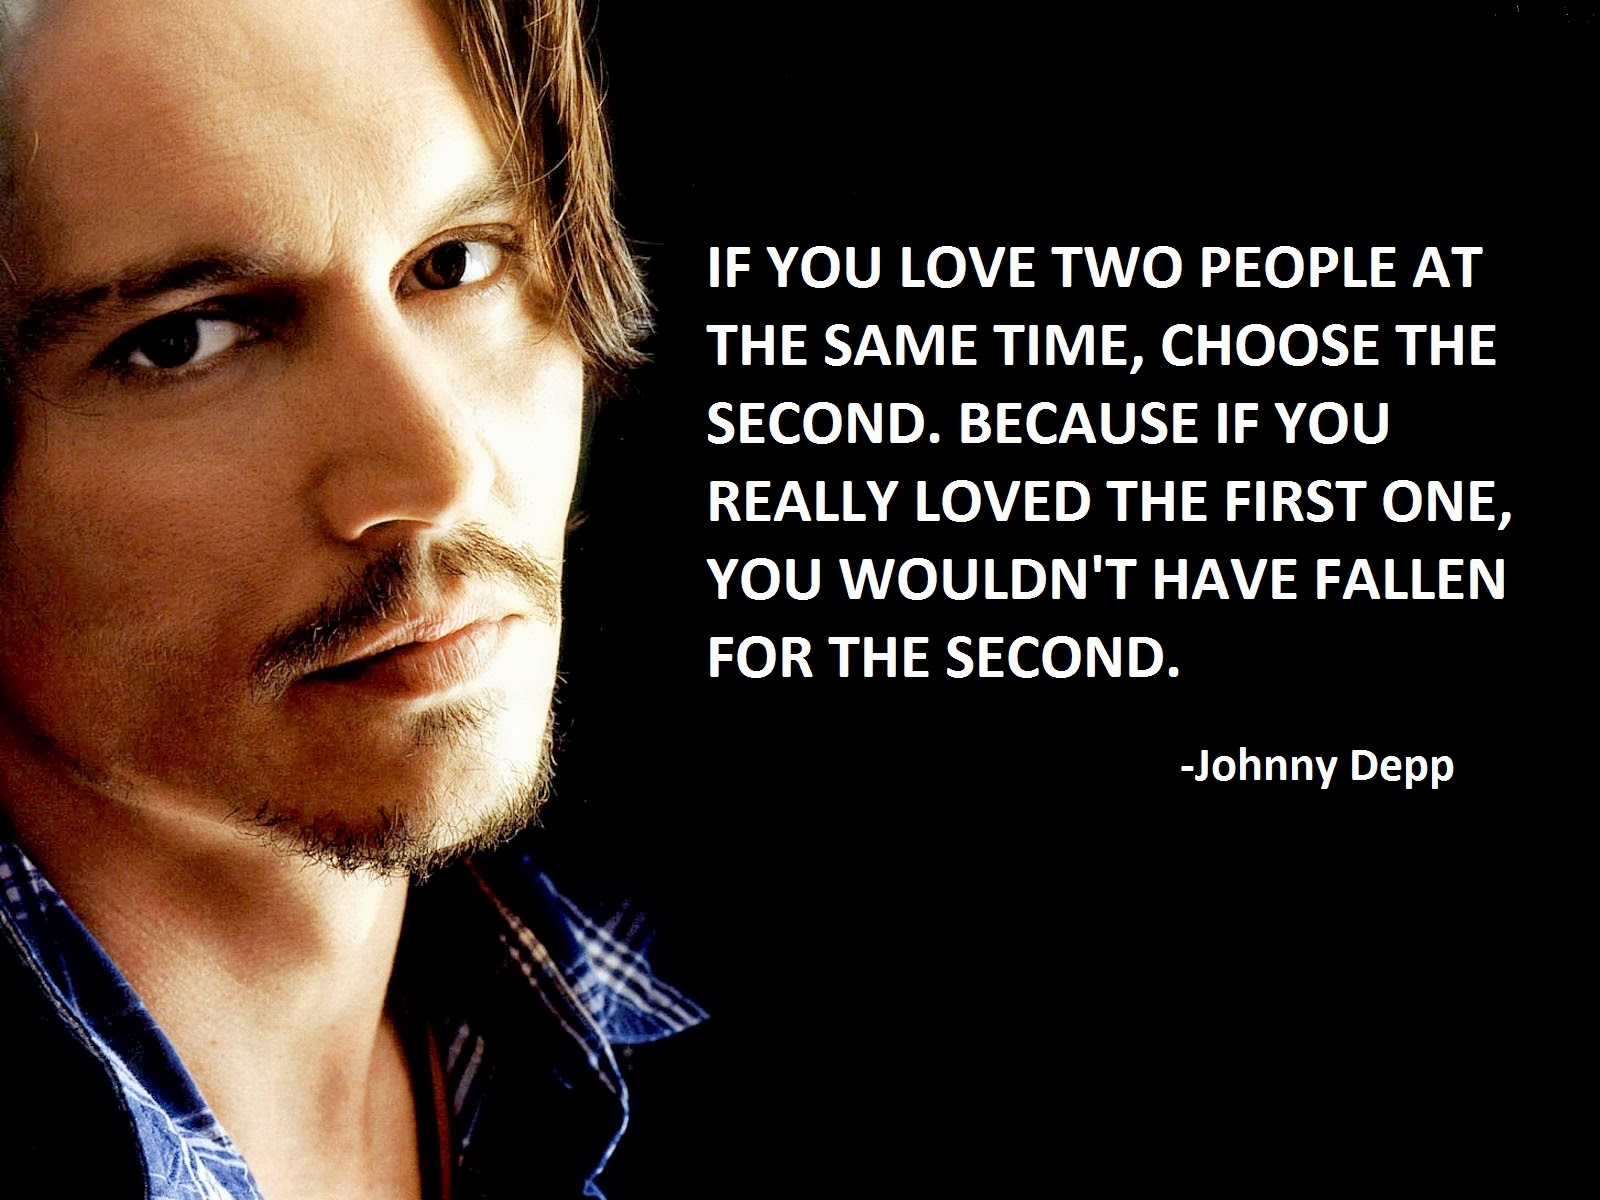 Johnny Depp Love Quotes : http://www.bwallpapers.com/wallpaper/best-love-quotes-4008/